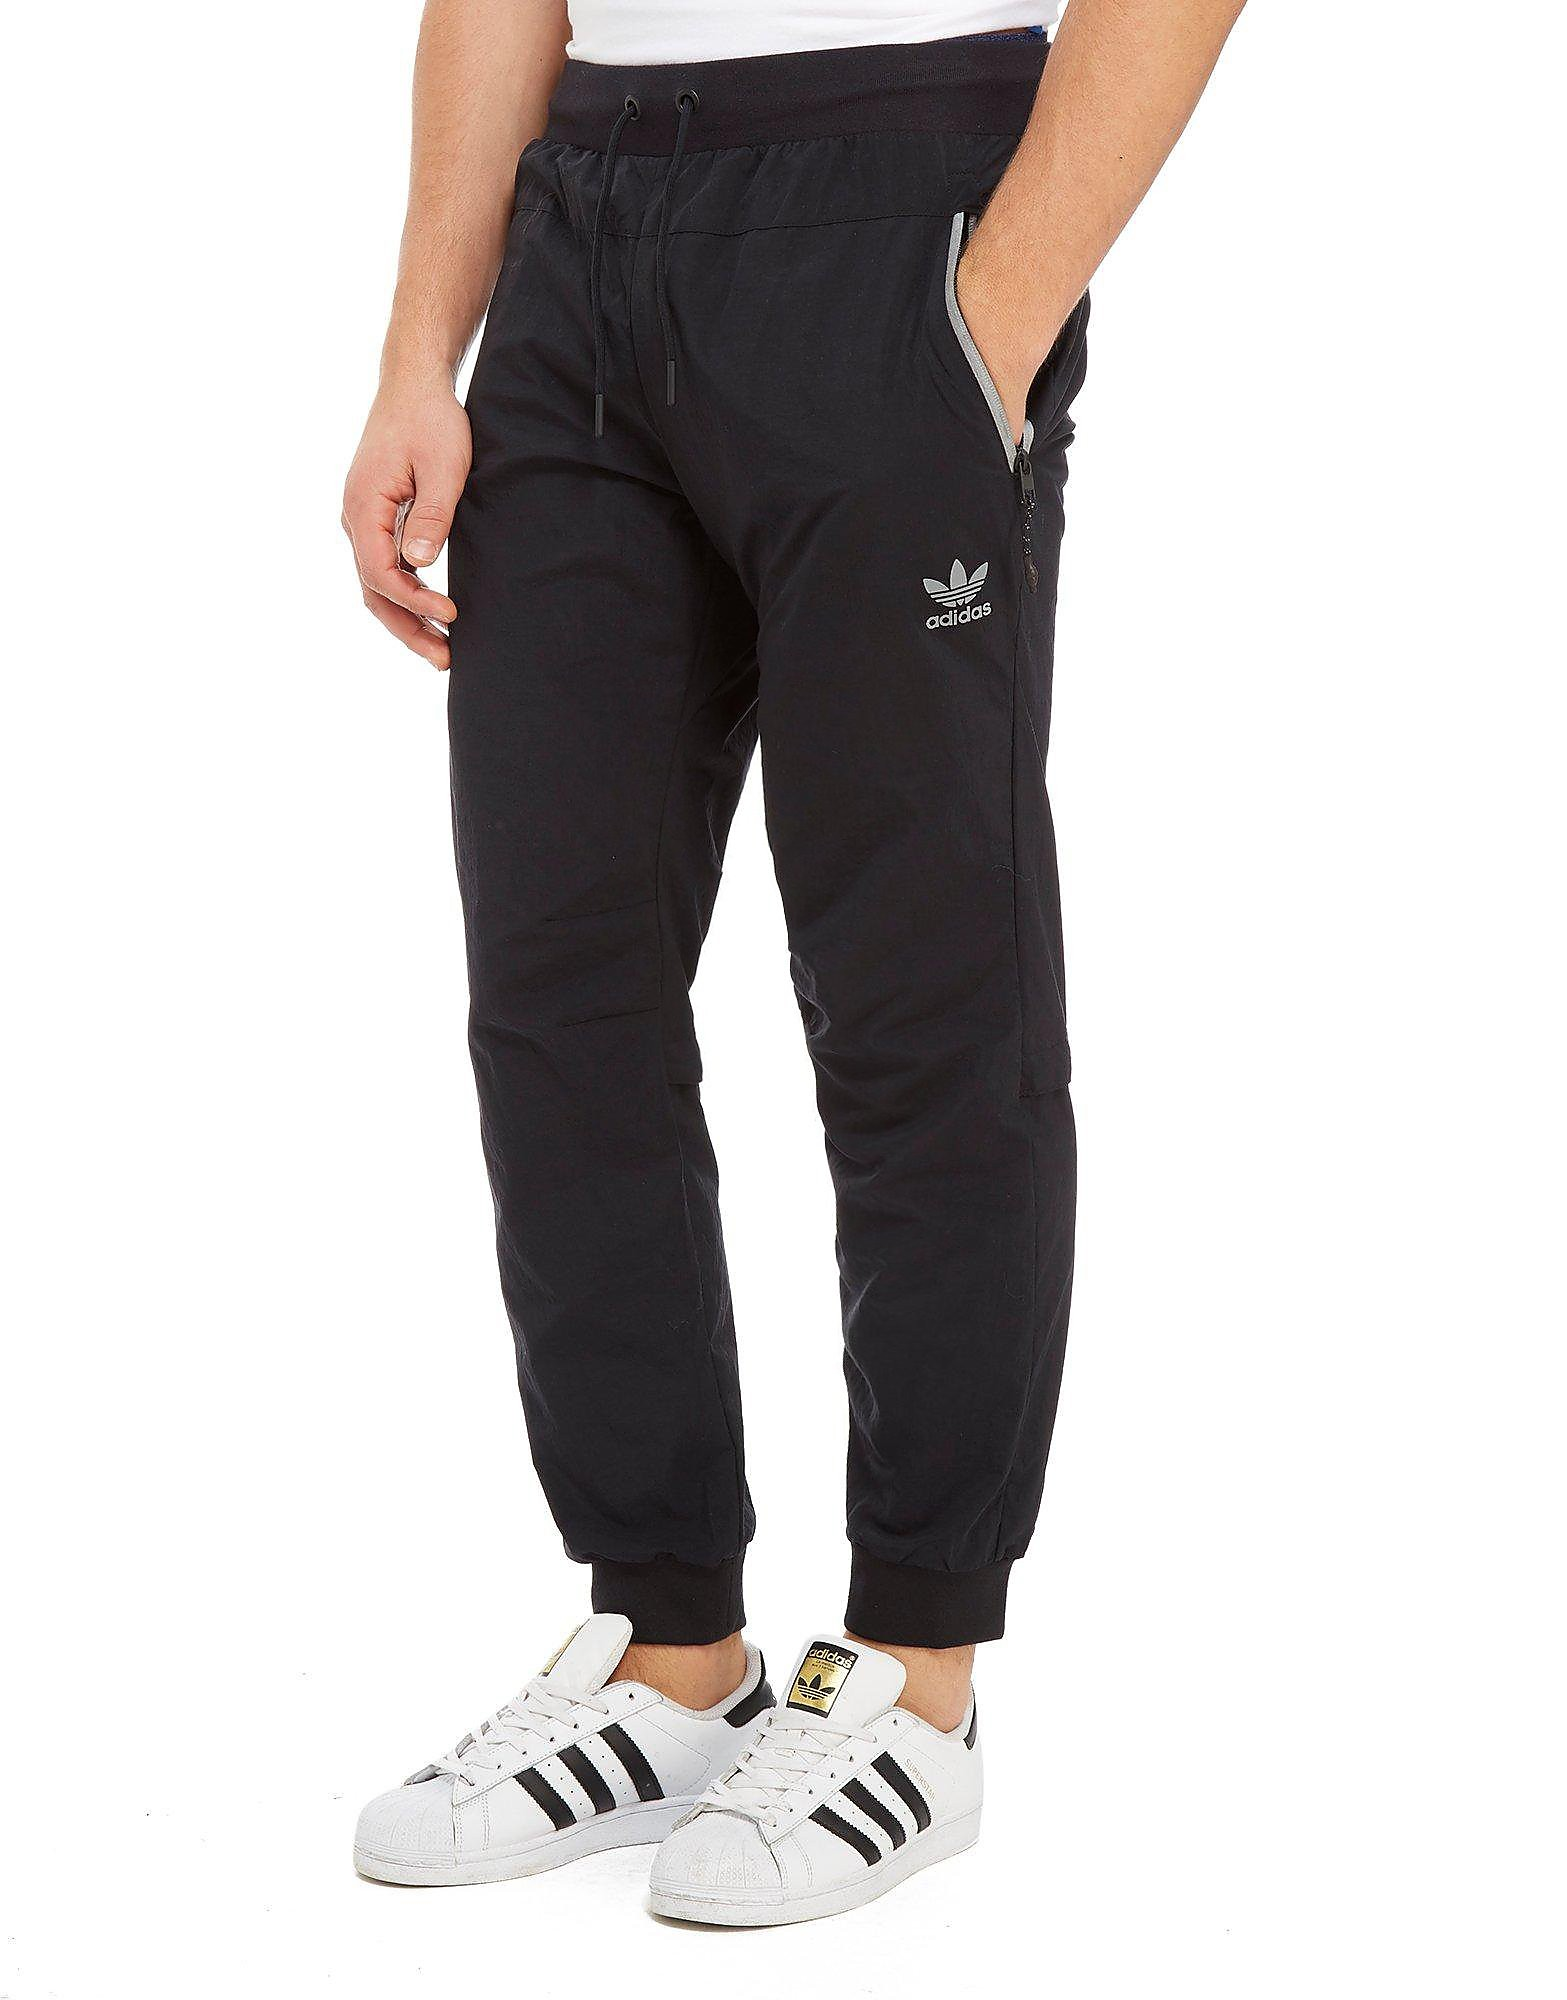 adidas Originals Sportlux Woven Pants